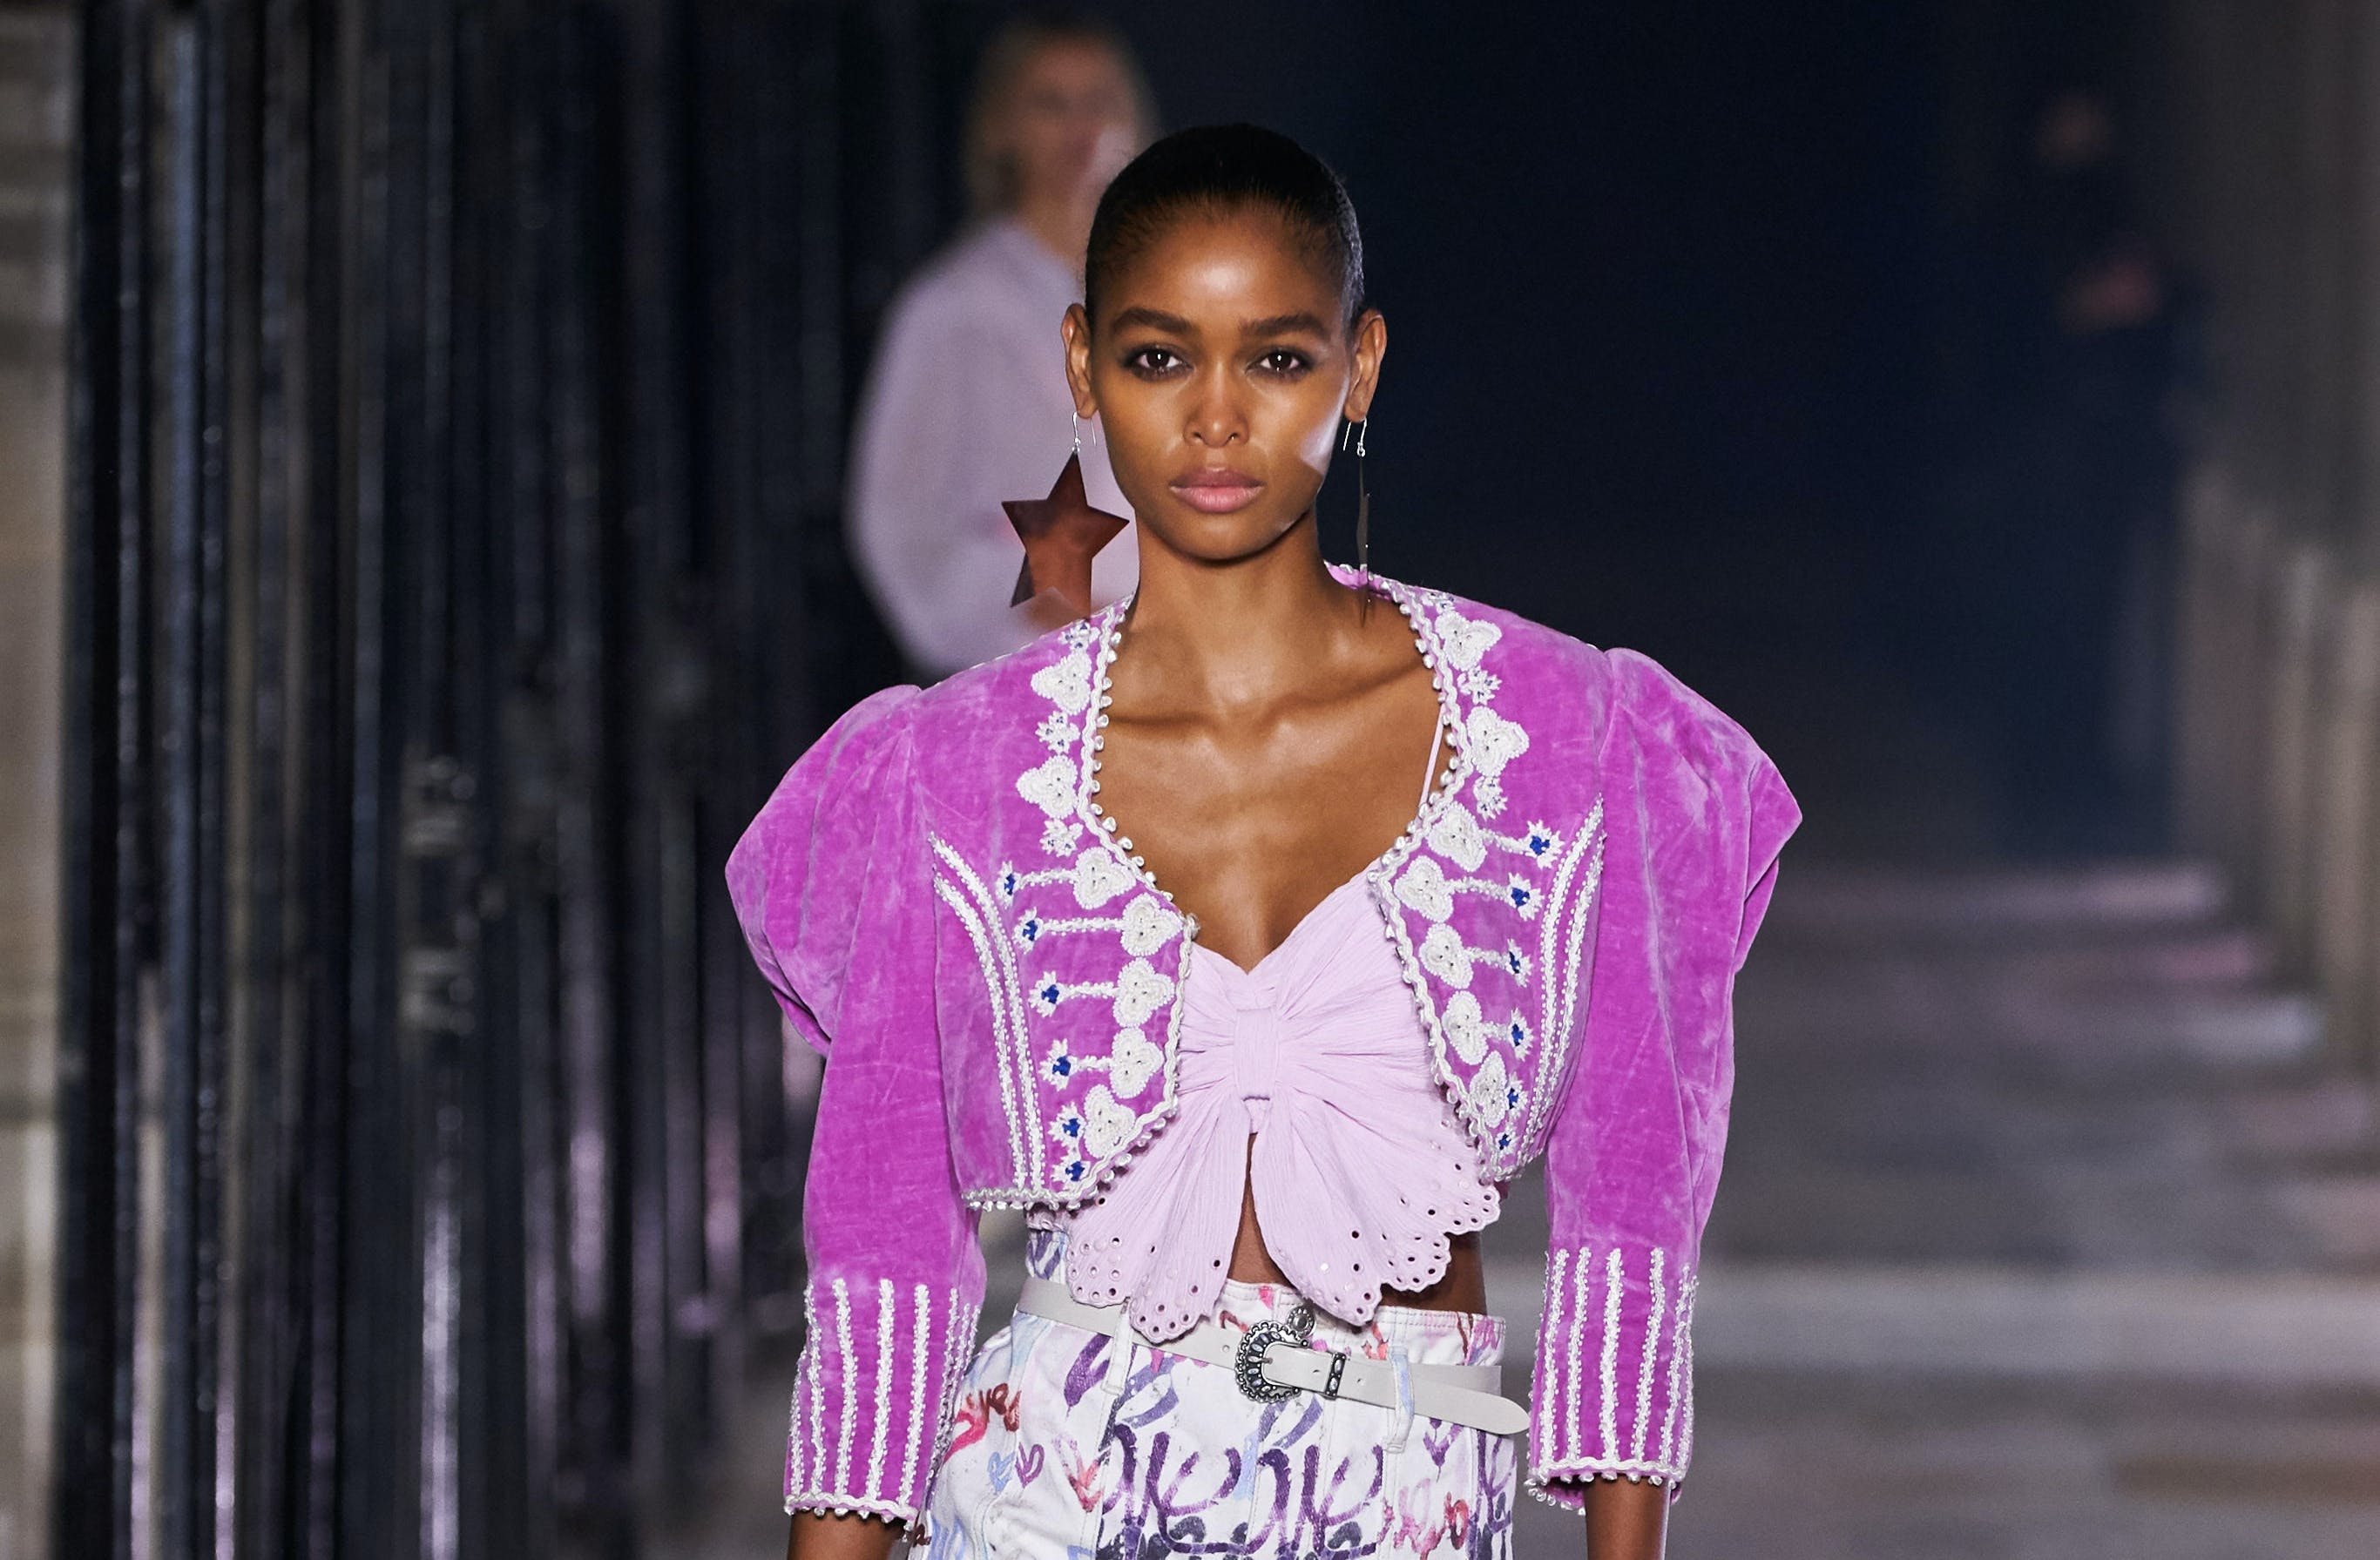 ISABEL MARANT SPRING 2021 READY-TO-WEAR